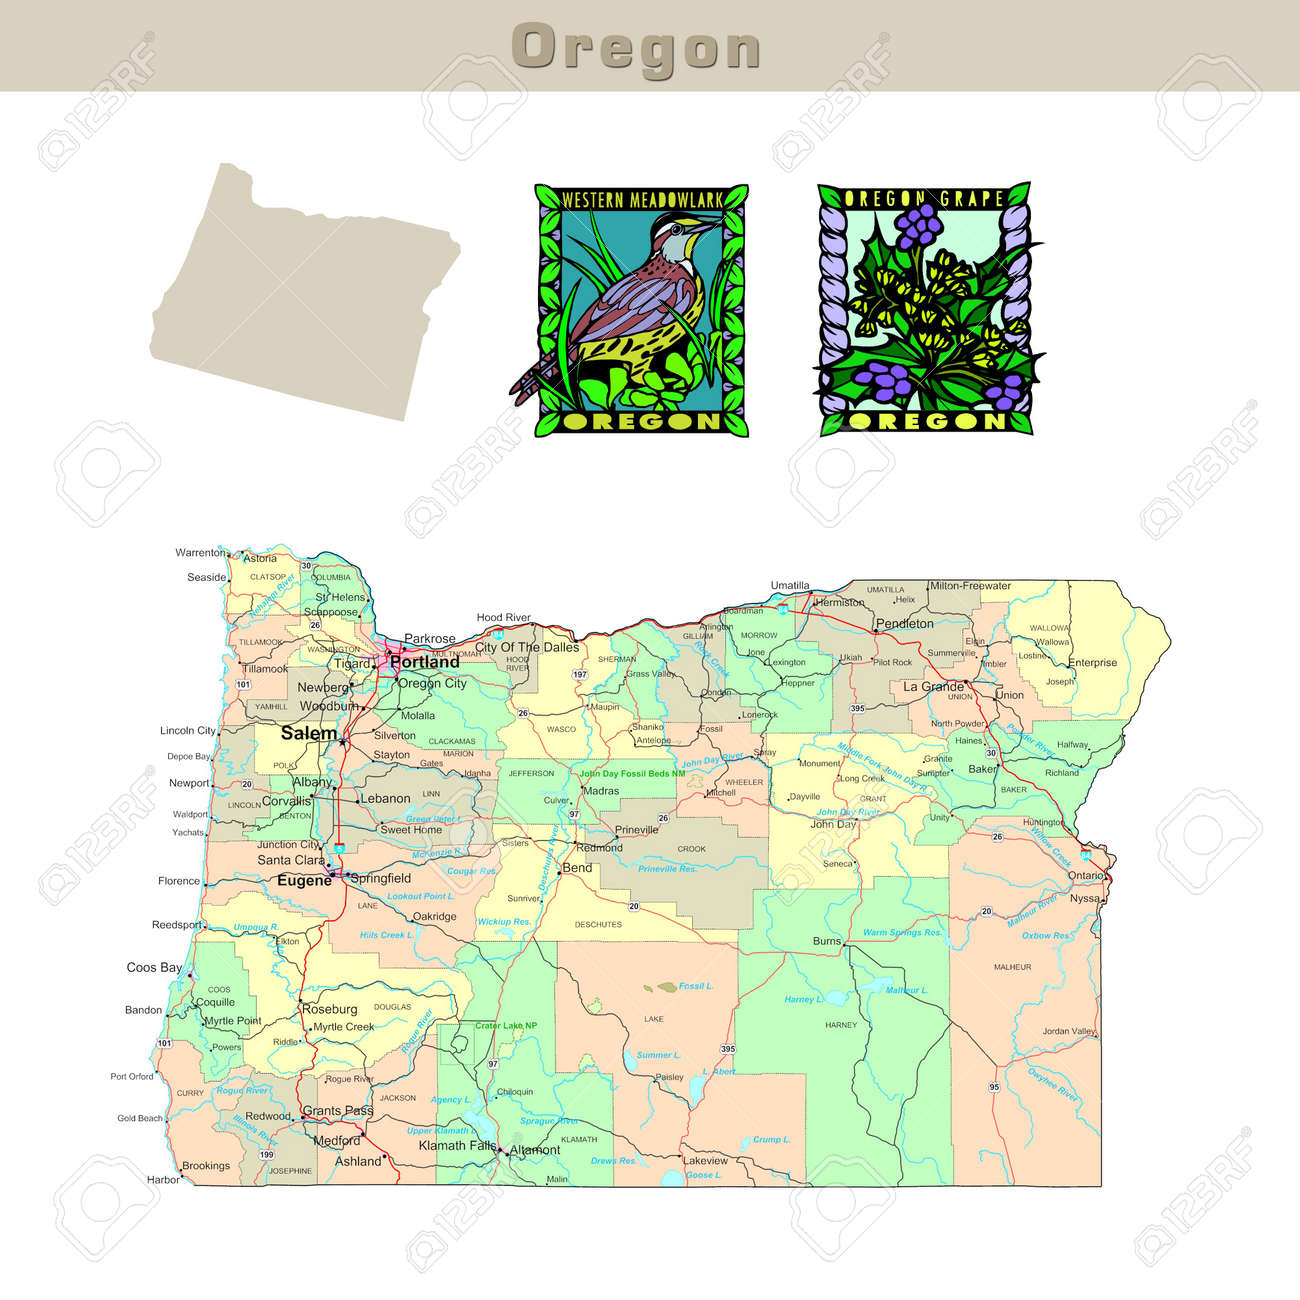 USA States Series Oregon Political Map With Counties Roads - Map of oregon state usa